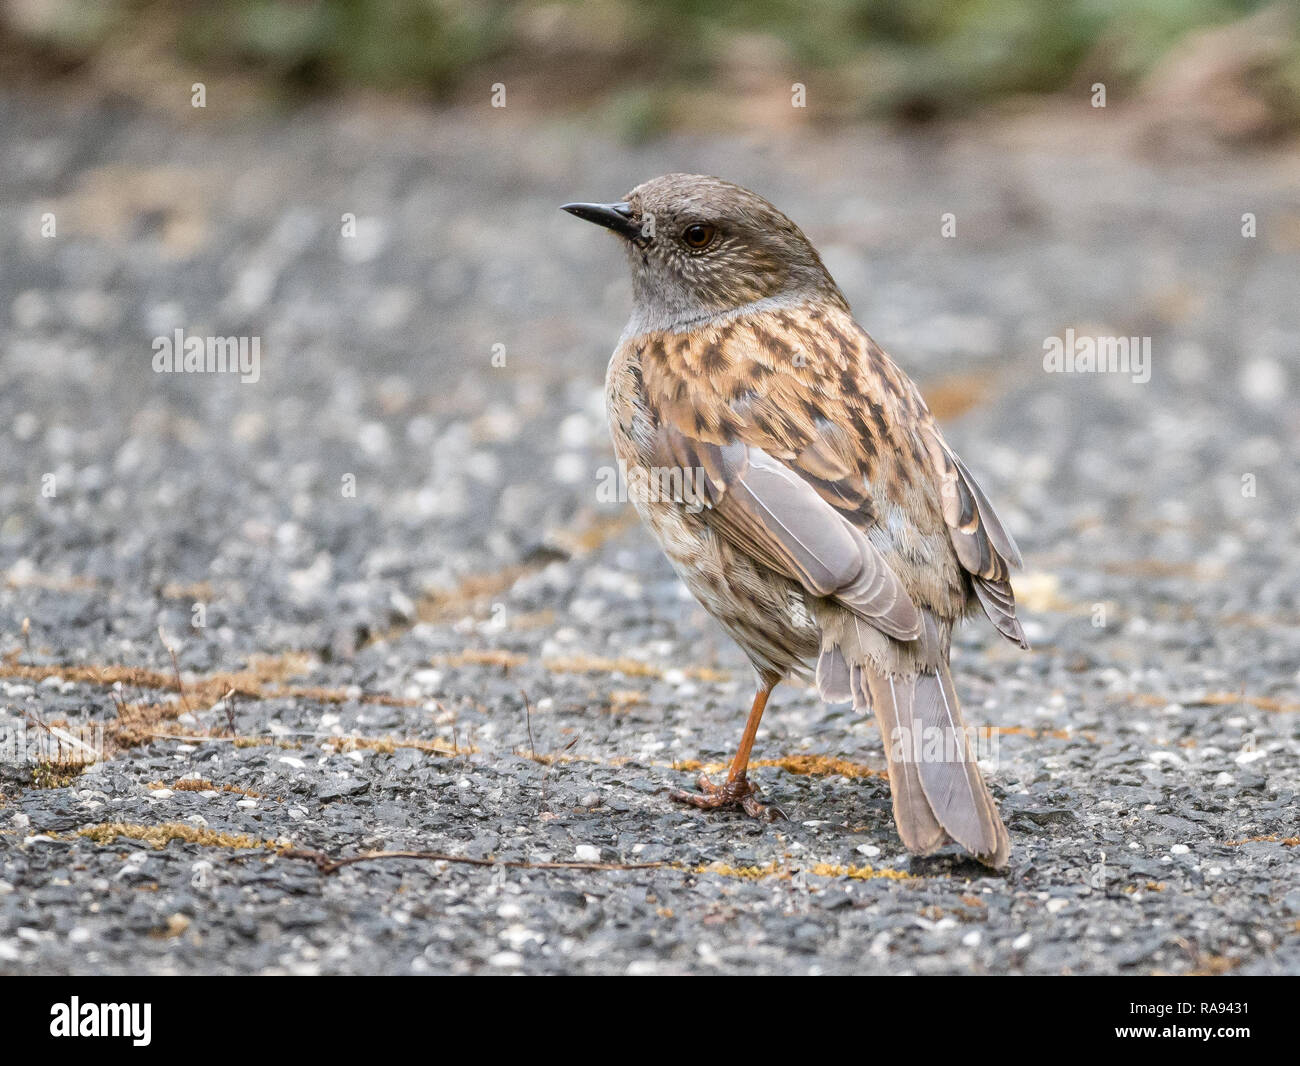 Adult dunnock or hedge accentor, Prunella modularis, back view standing on pavement in garden - Stock Image